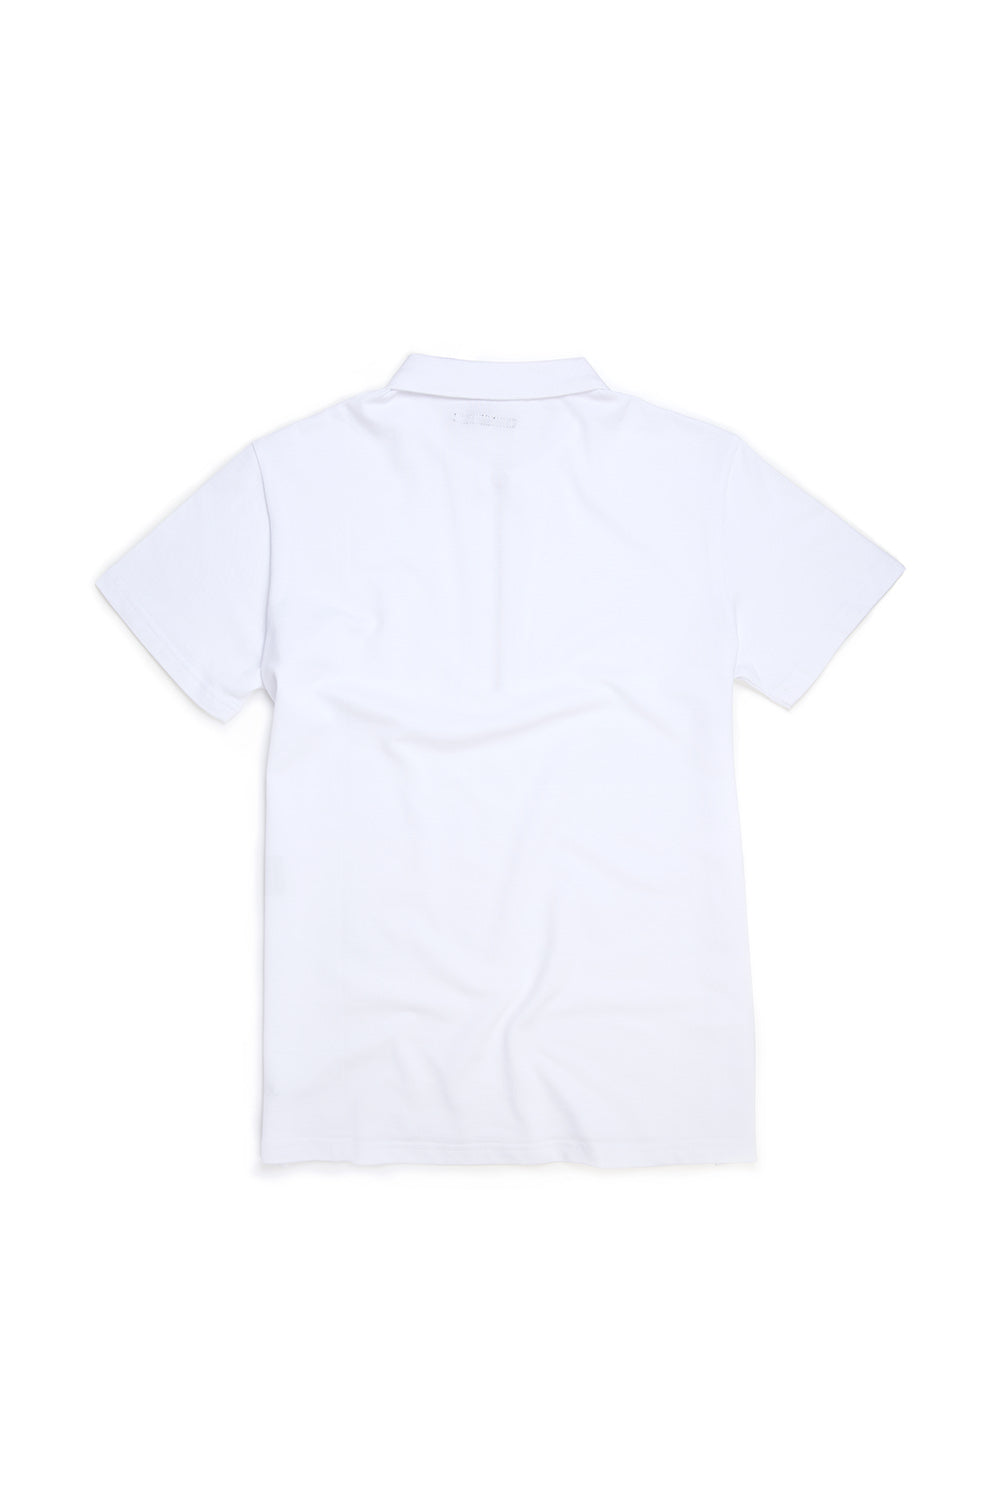 The White Miami Polo Classic Fit